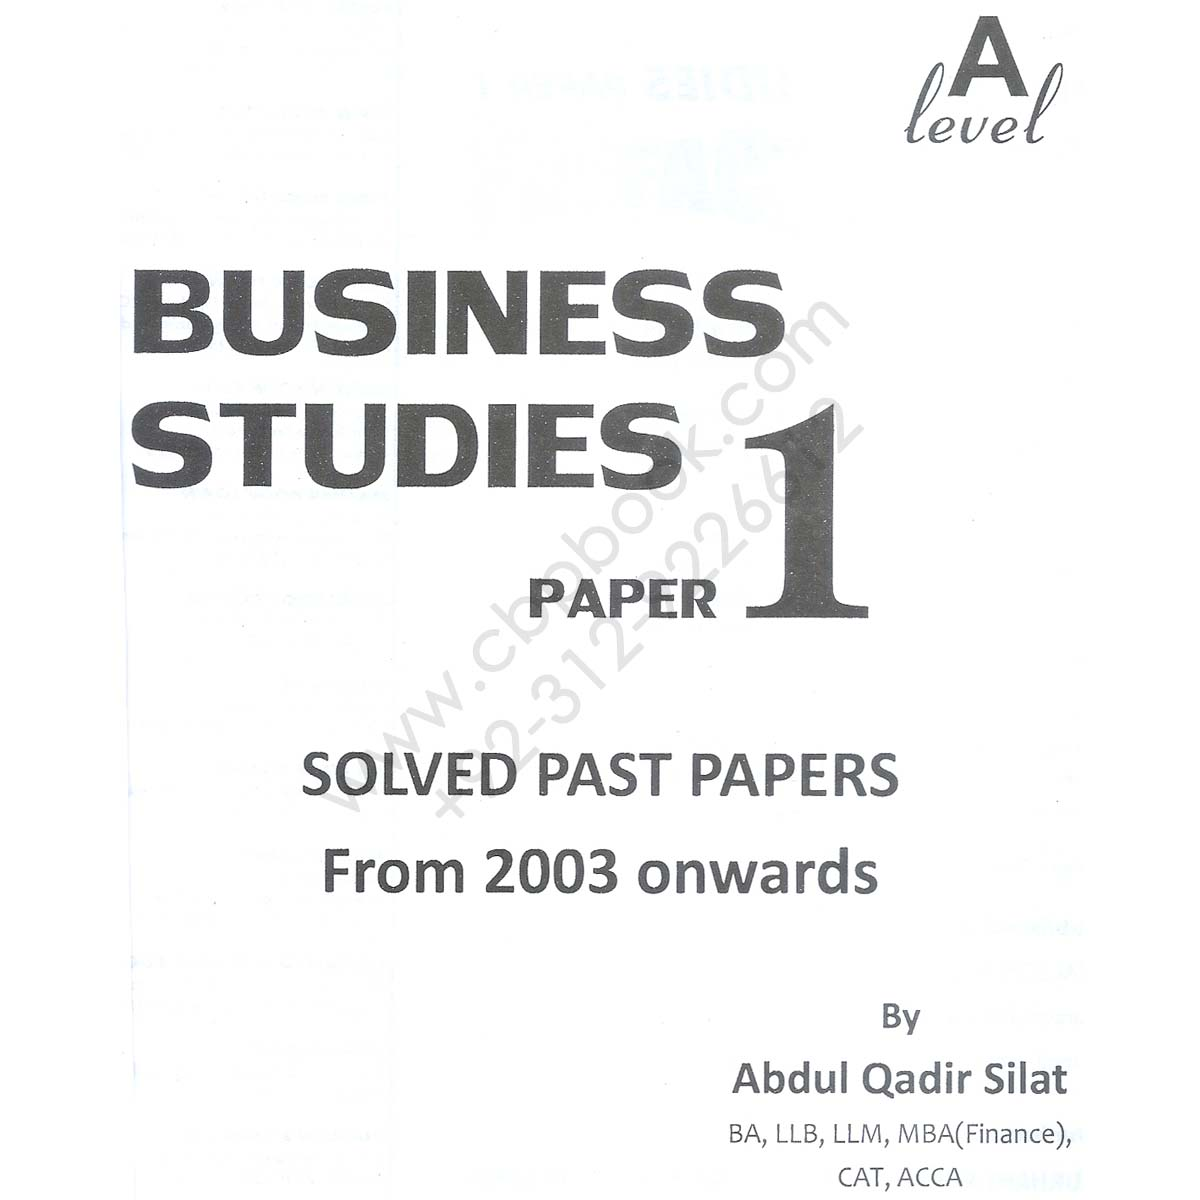 a level business studies paper 1 solved past papers by